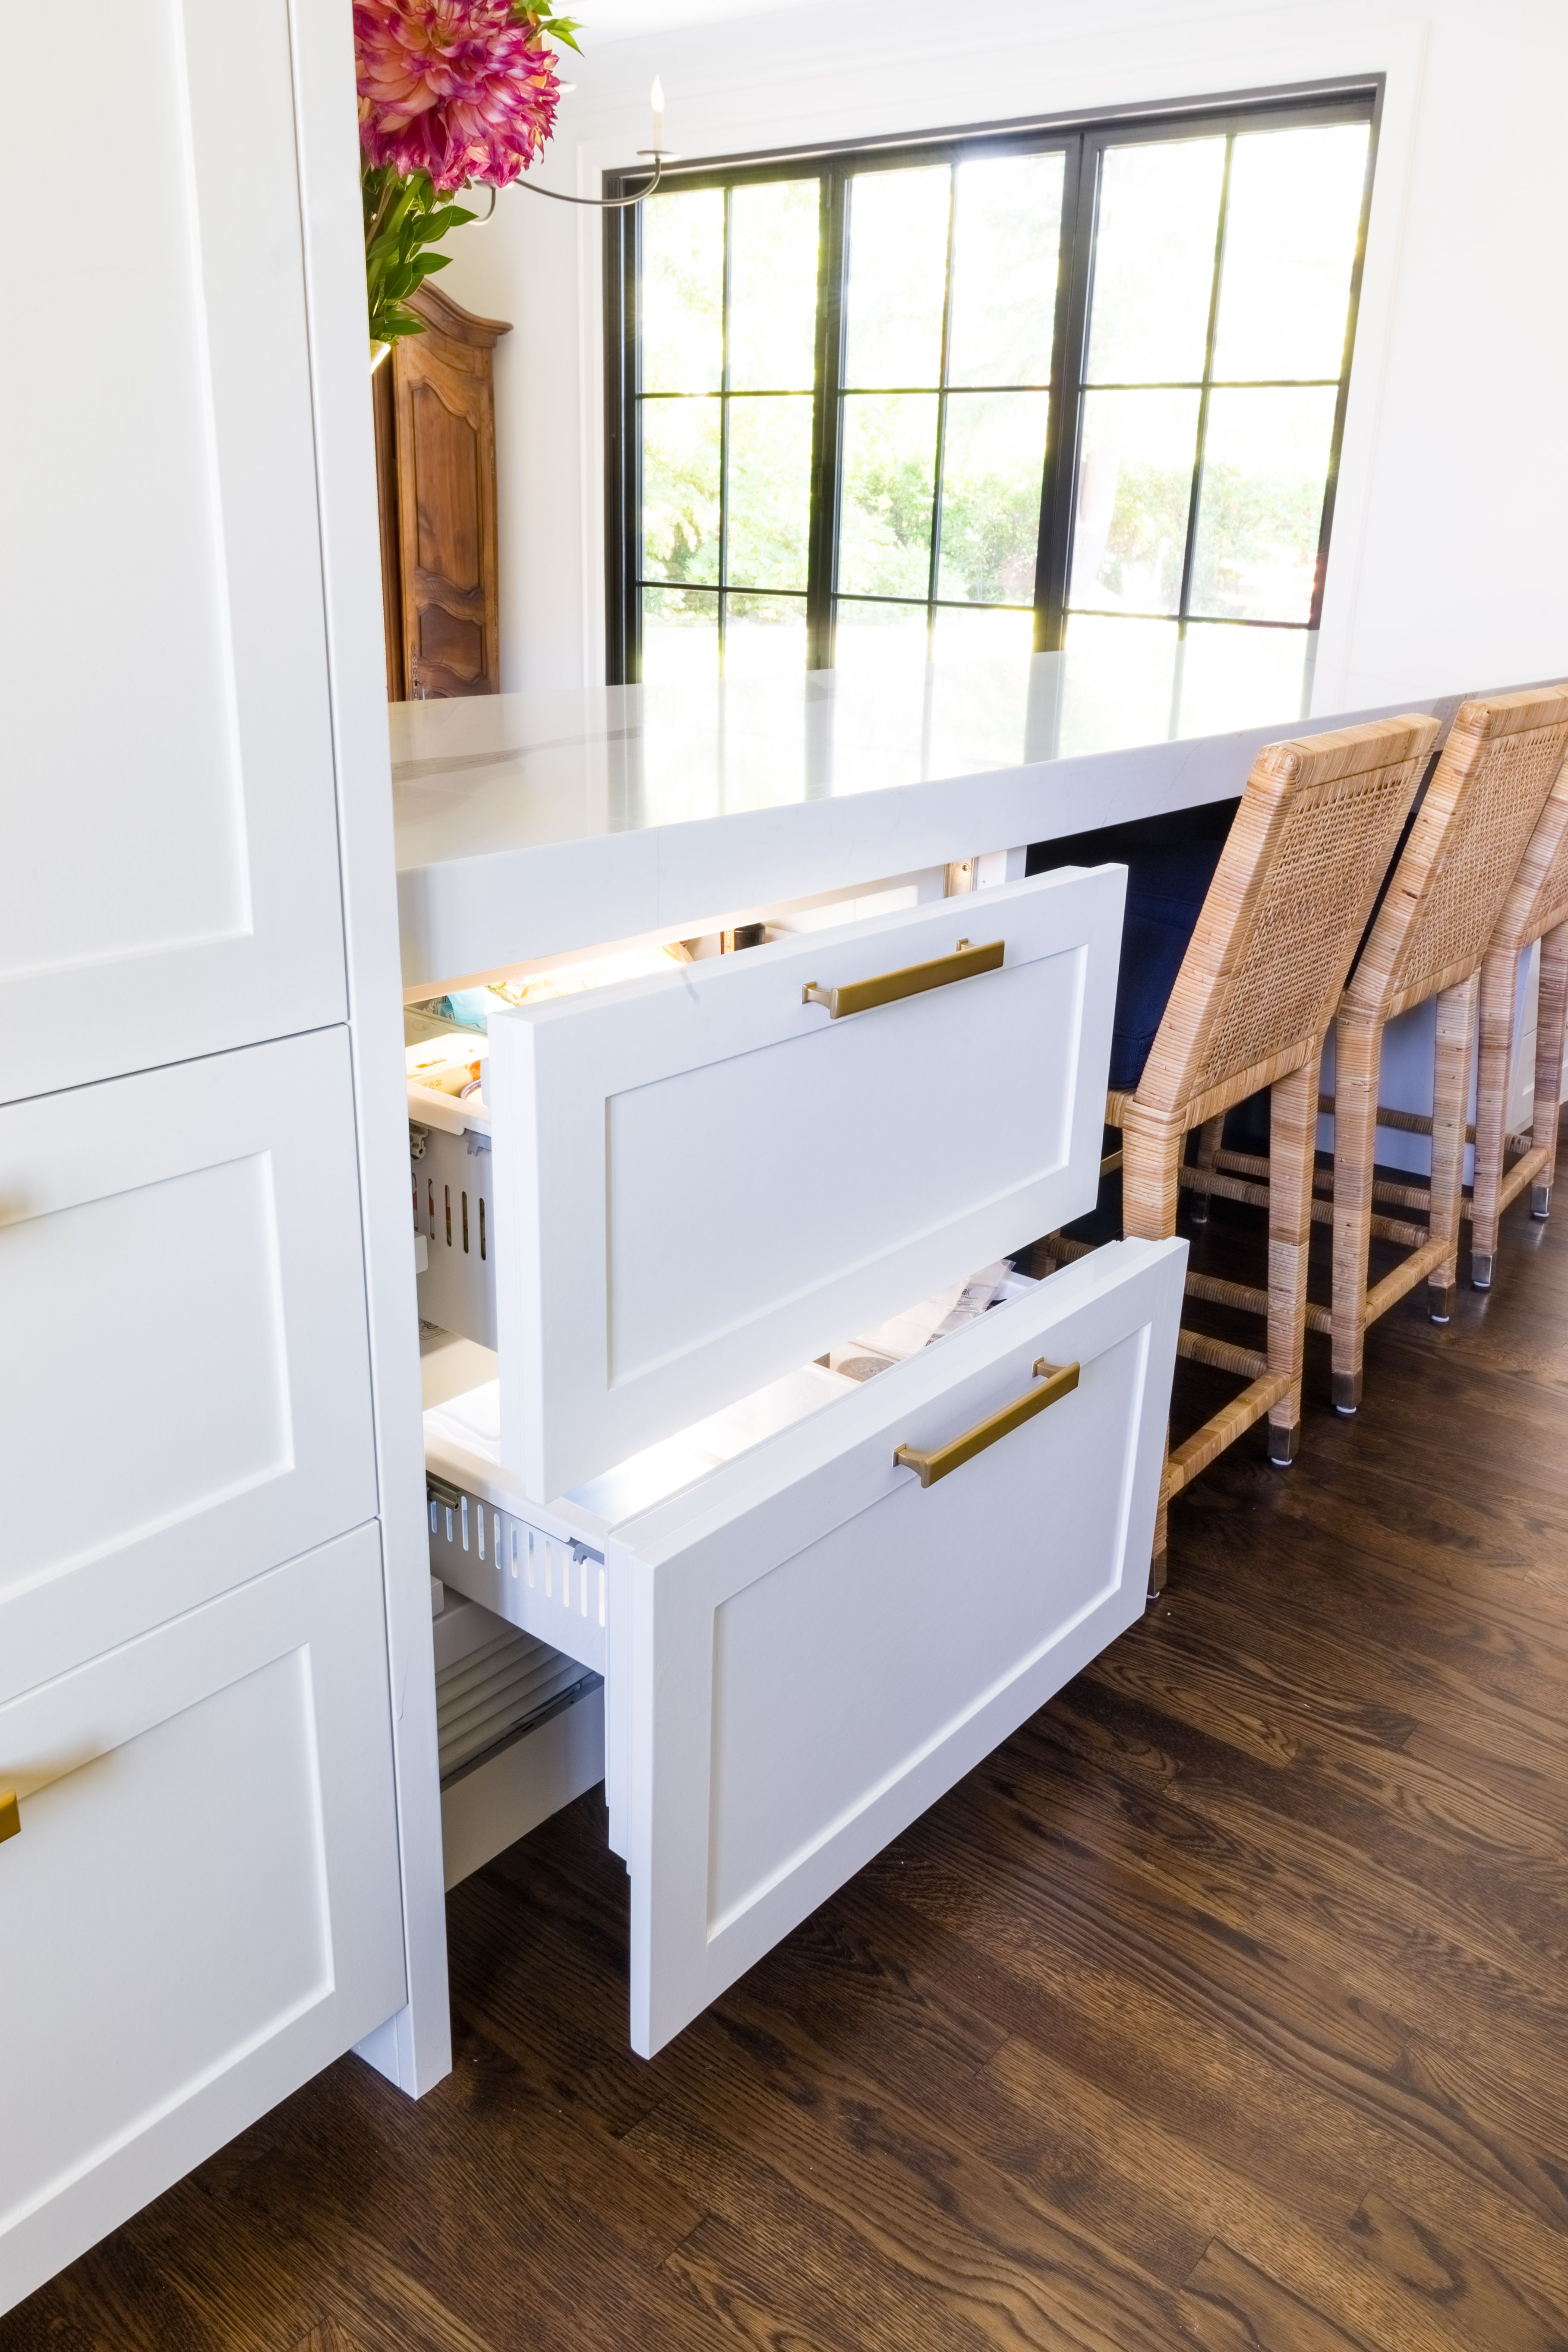 Two Freezer Drawers Disguised As Cabinets From A Whole House